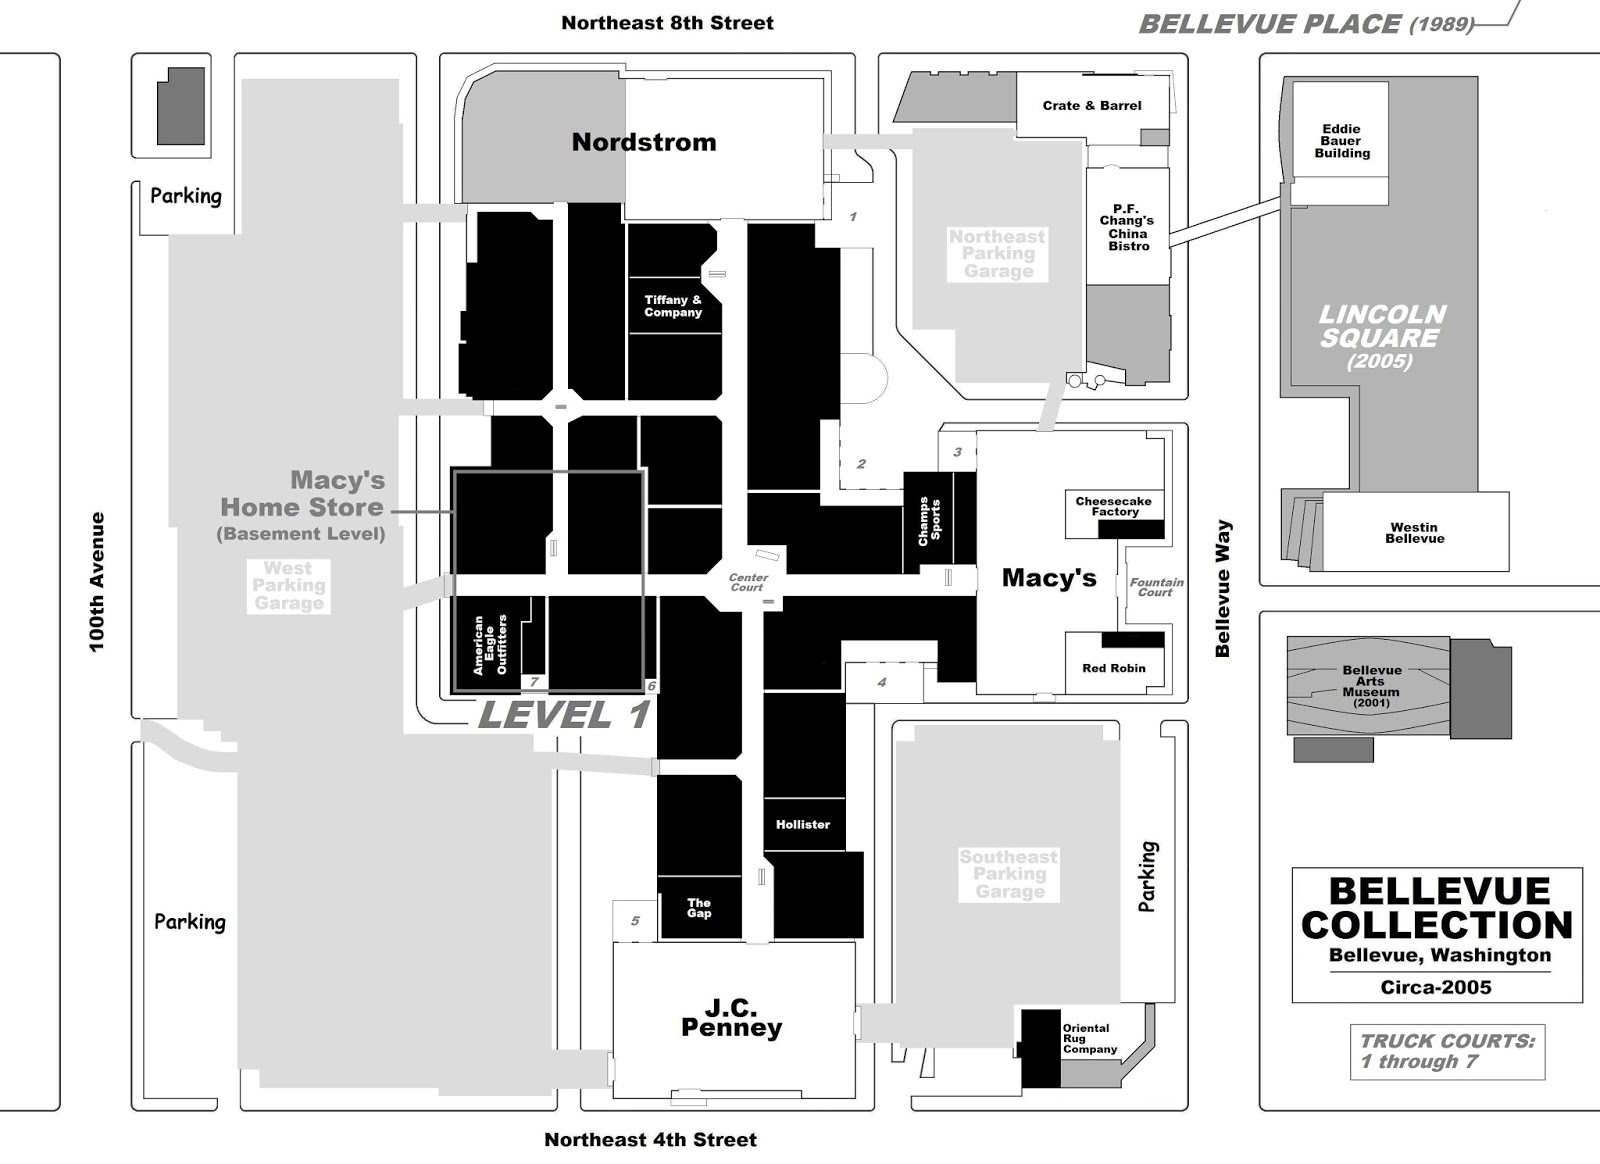 bellevue square mall map with 2008 08 01 Archive on Hartford Connecticut likewise Map Canada blogspot moreover Larwin Plaza Shopping Center also 5607391383 likewise The Latest Name Interested In Emi Ron Perelman.